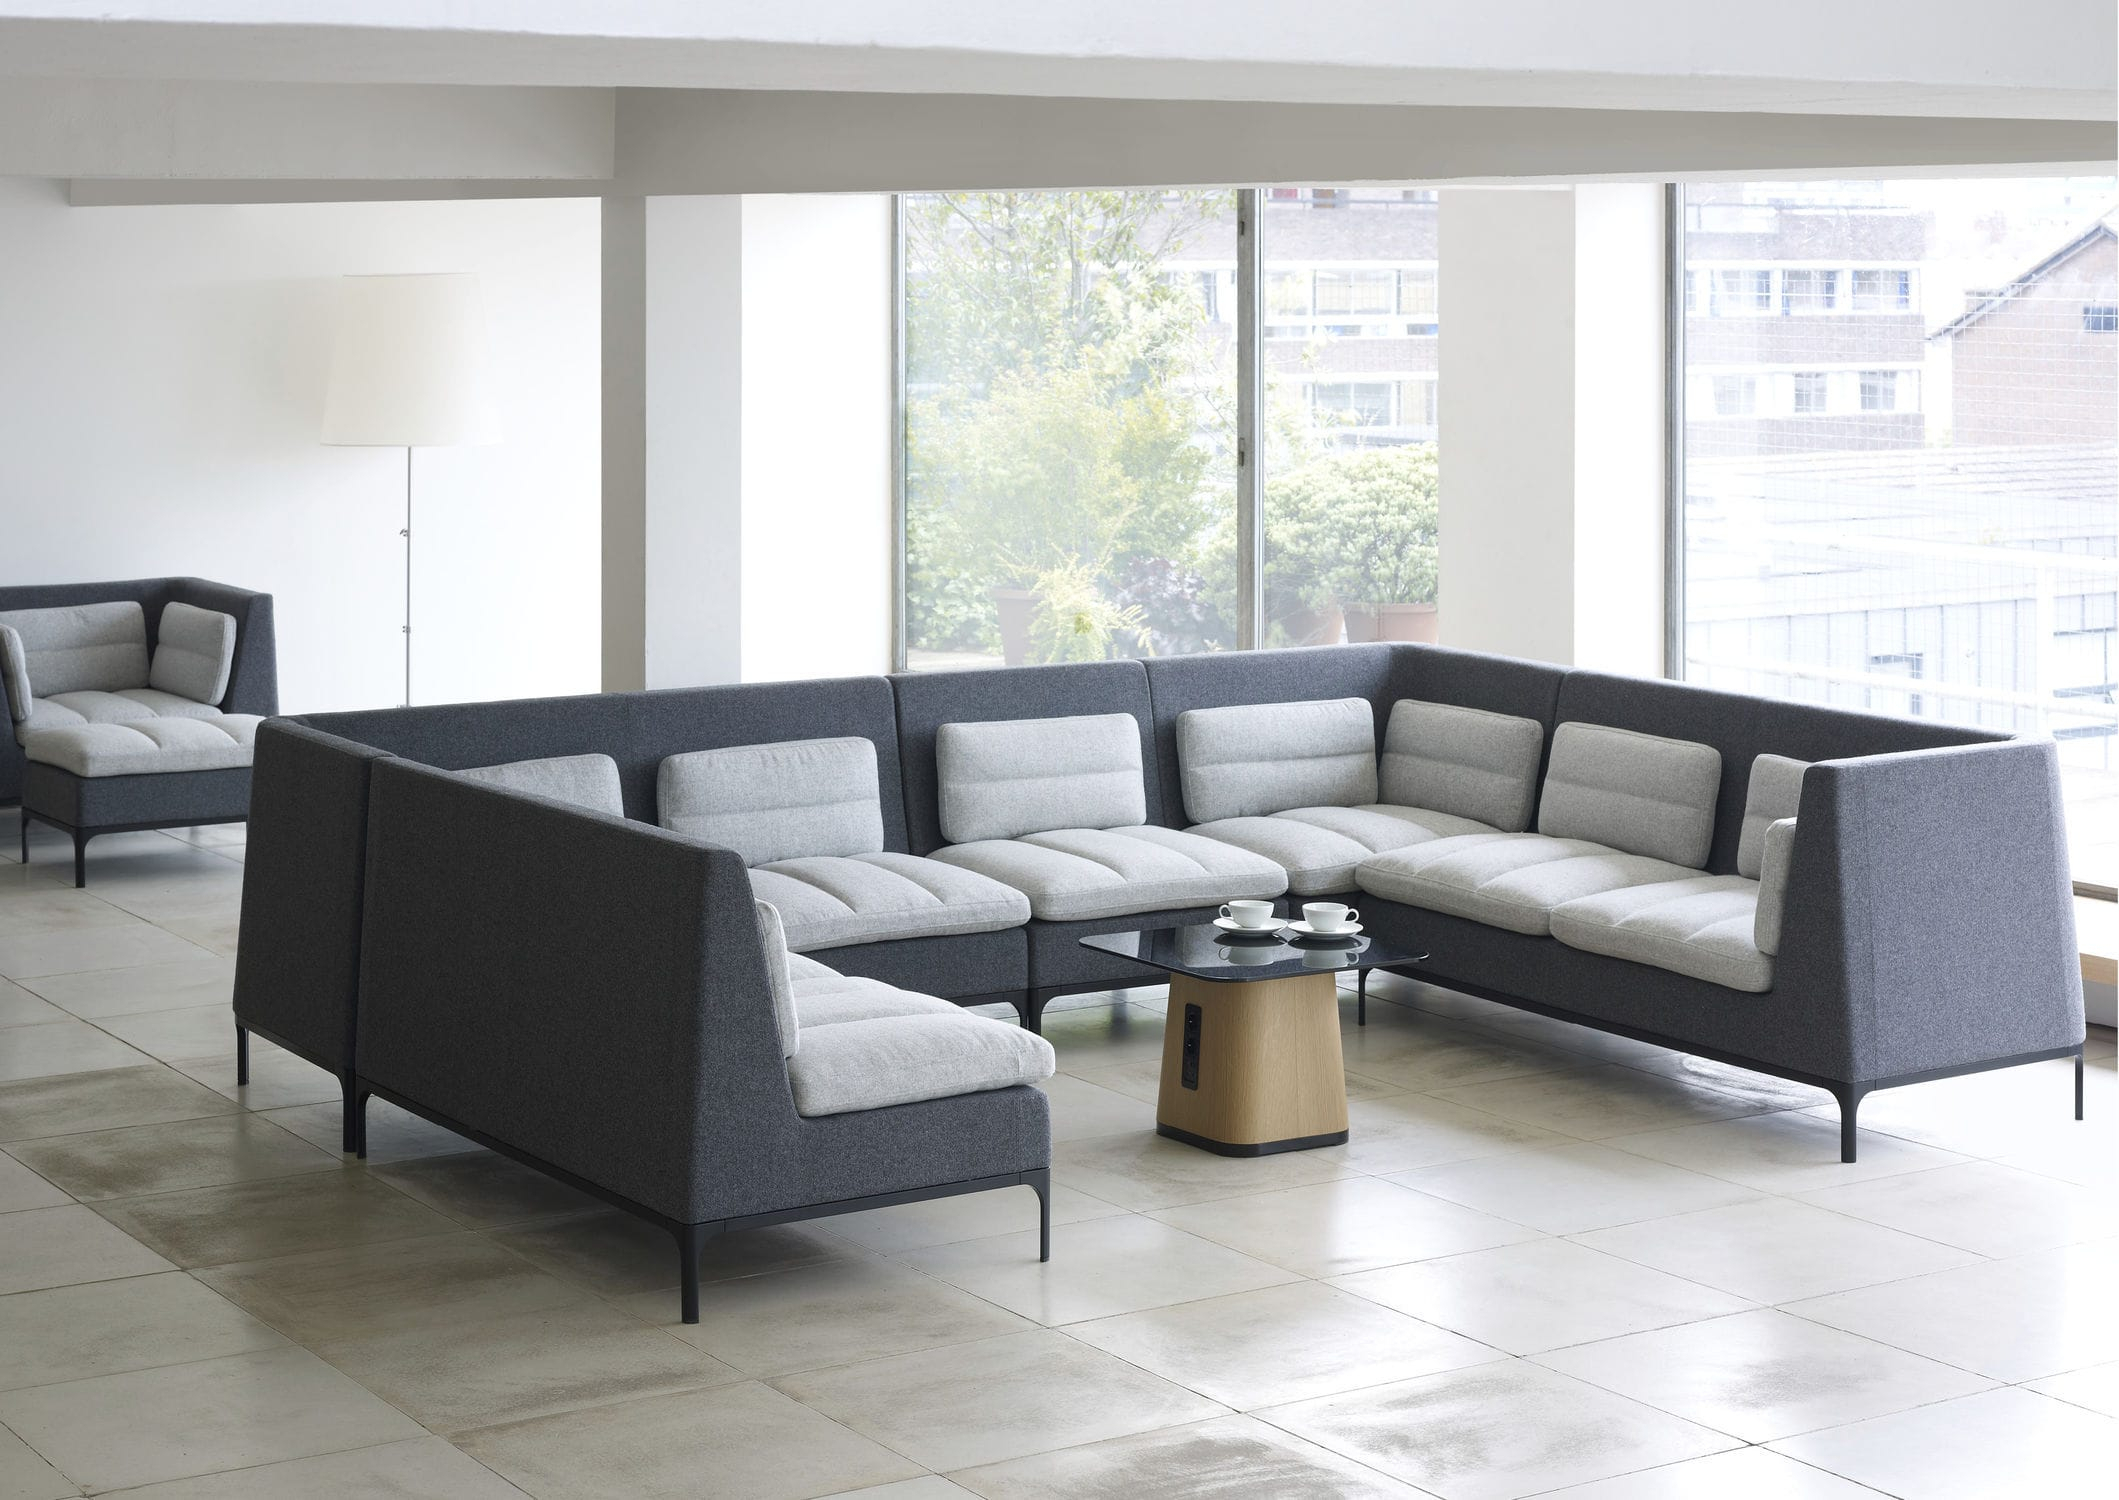 Modular Sofa / Contemporary / Aluminum / Fabric – Havenmark For Haven Sofa Chairs (View 19 of 20)